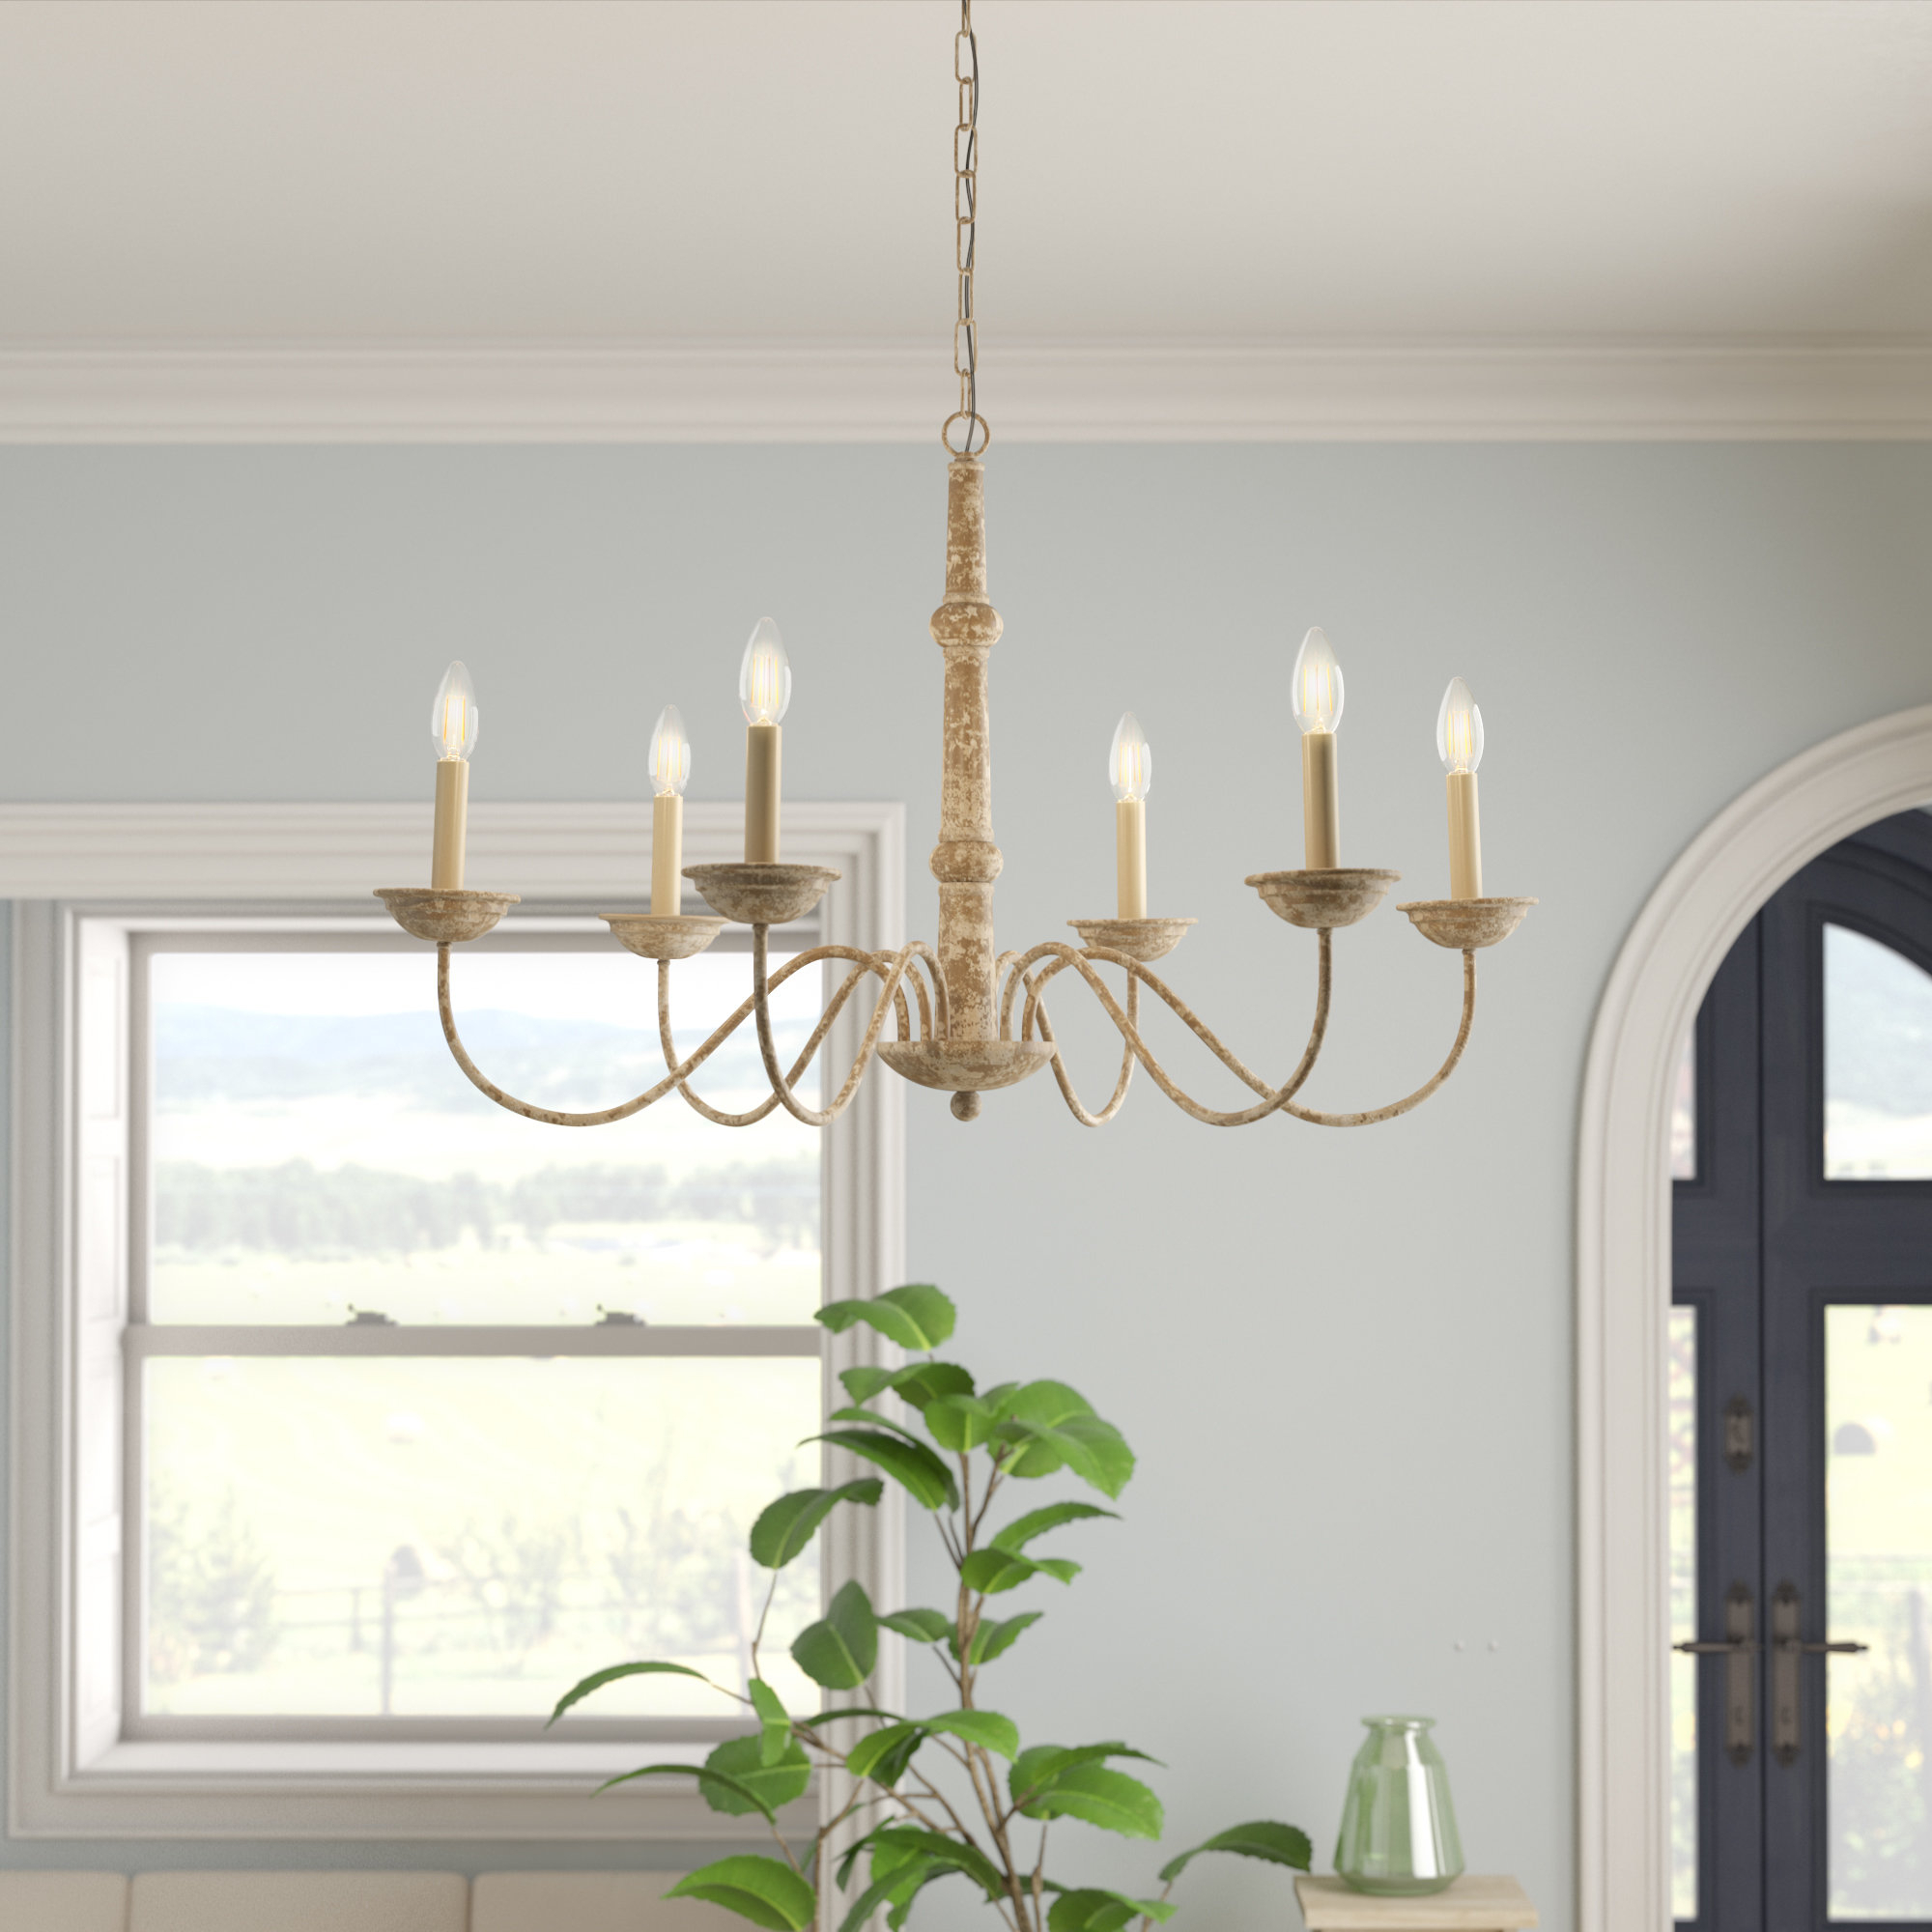 Preferred Gracie Oaks Seneca 6 Light Candle Style Chandelier & Reviews Intended For Armande Candle Style Chandeliers (View 19 of 25)